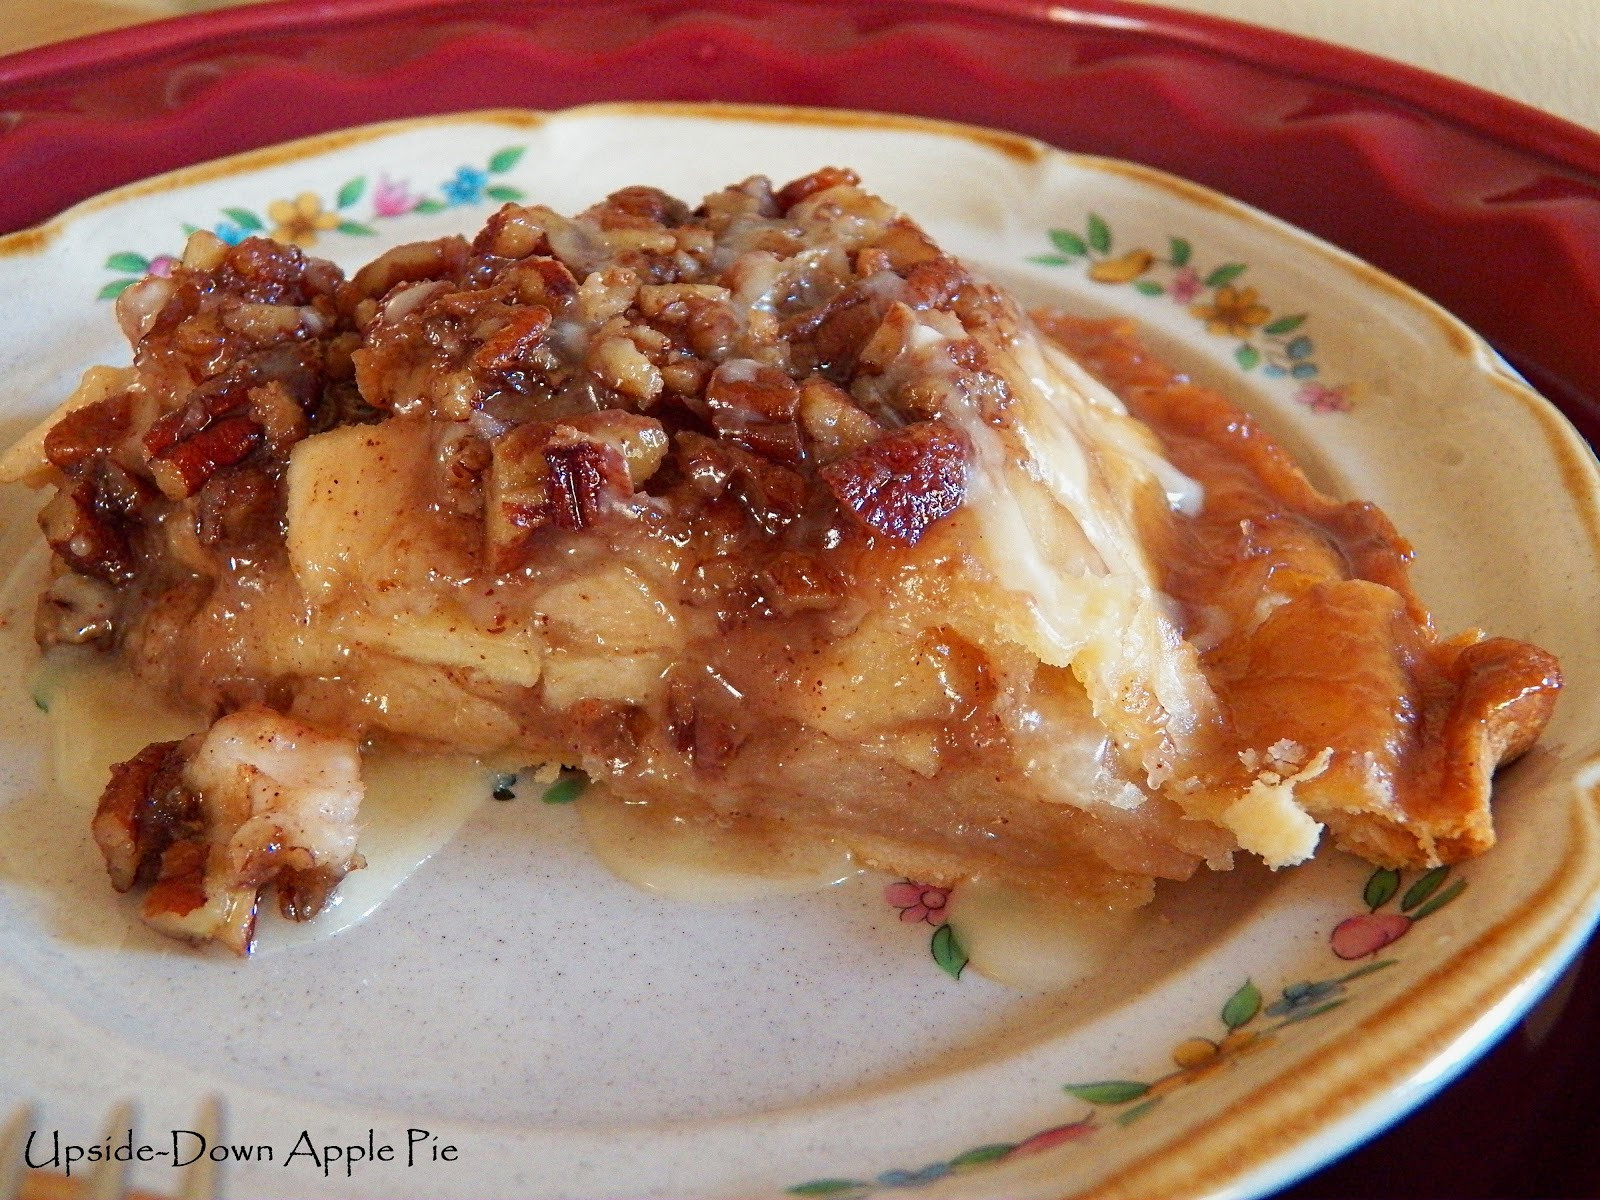 Upside Down Apple Pie  fy Cuisine Home Recipes from Family & Friends